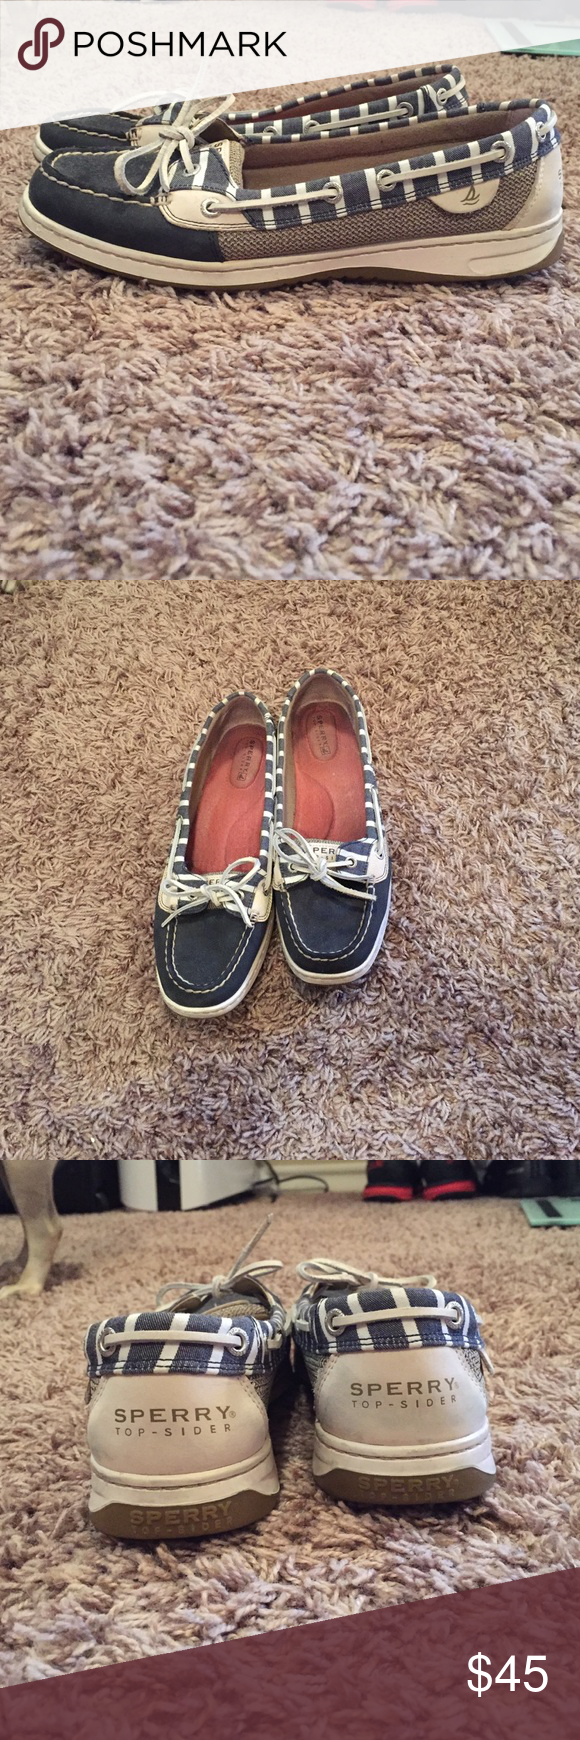 Sperry top siders Navy blue and cream colored Sperry top siders Sperry Top-Sider Shoes Flats & Loafers